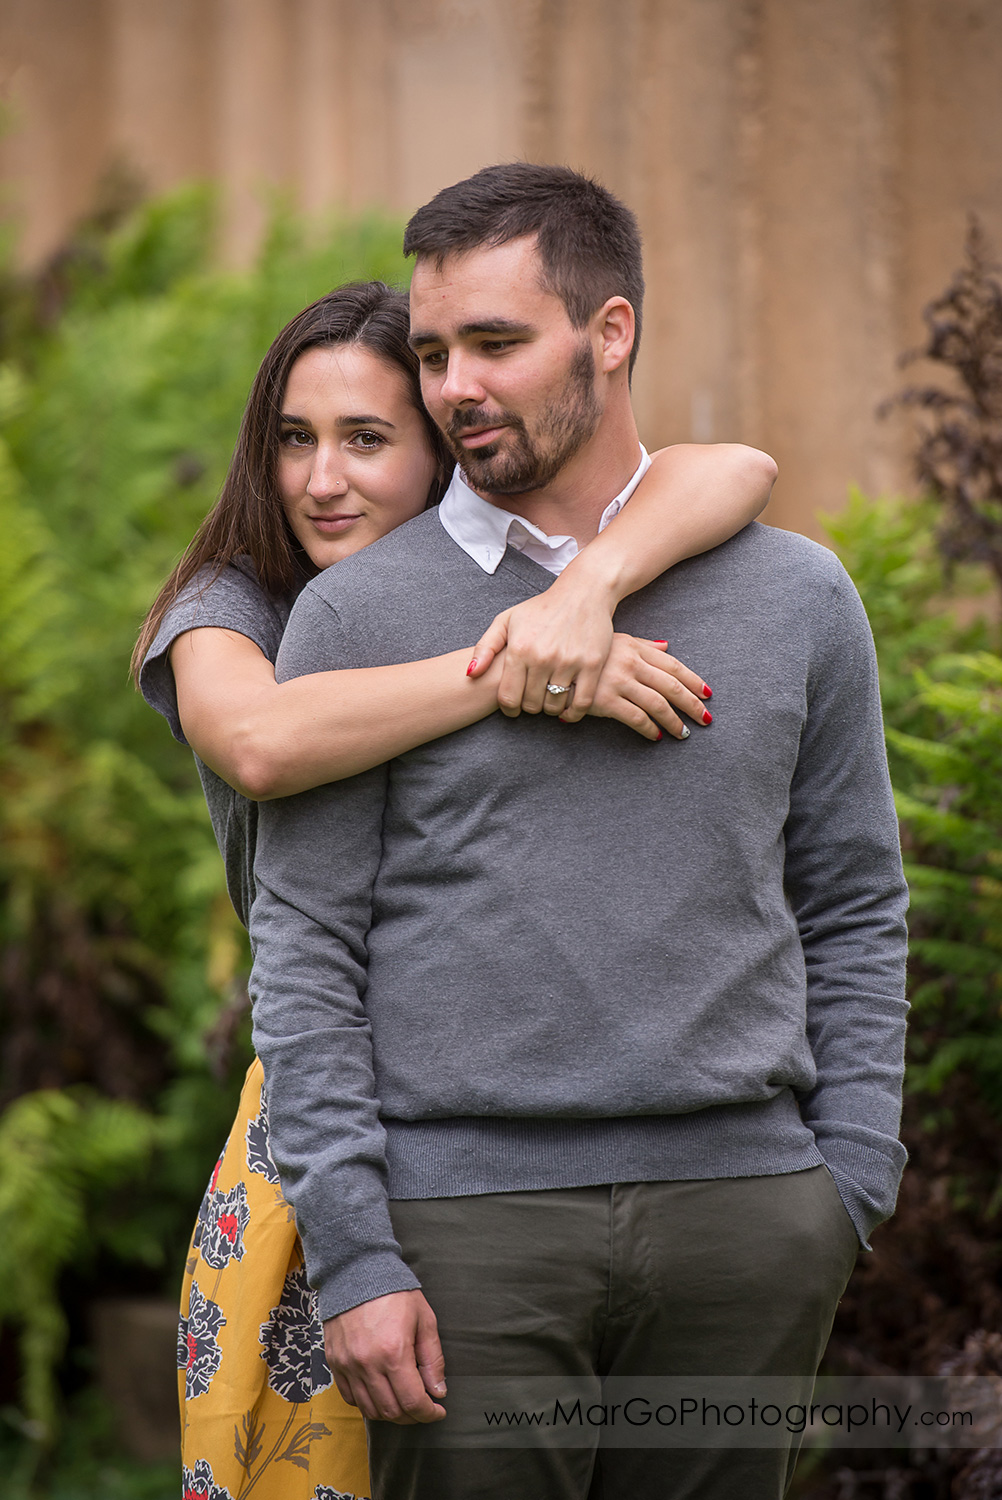 engagement session at Palace of Fine Arts in San Francisco - hugging couple